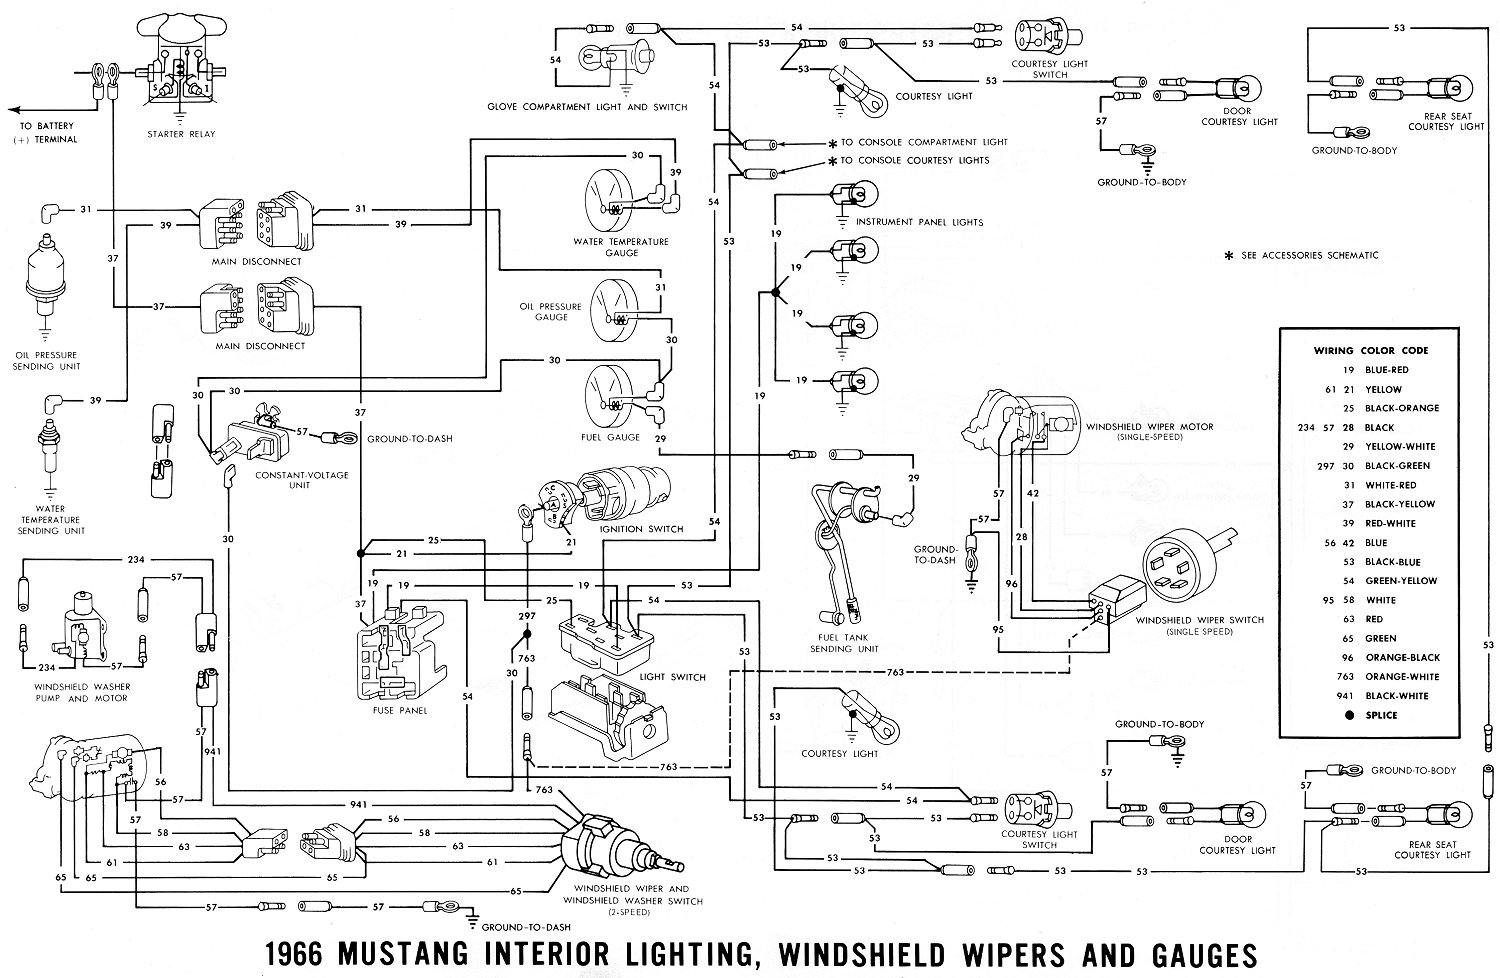 66inter1 1966 mustang wiring diagrams average joe restoration 1965 Mustang Restoration Guide at gsmx.co